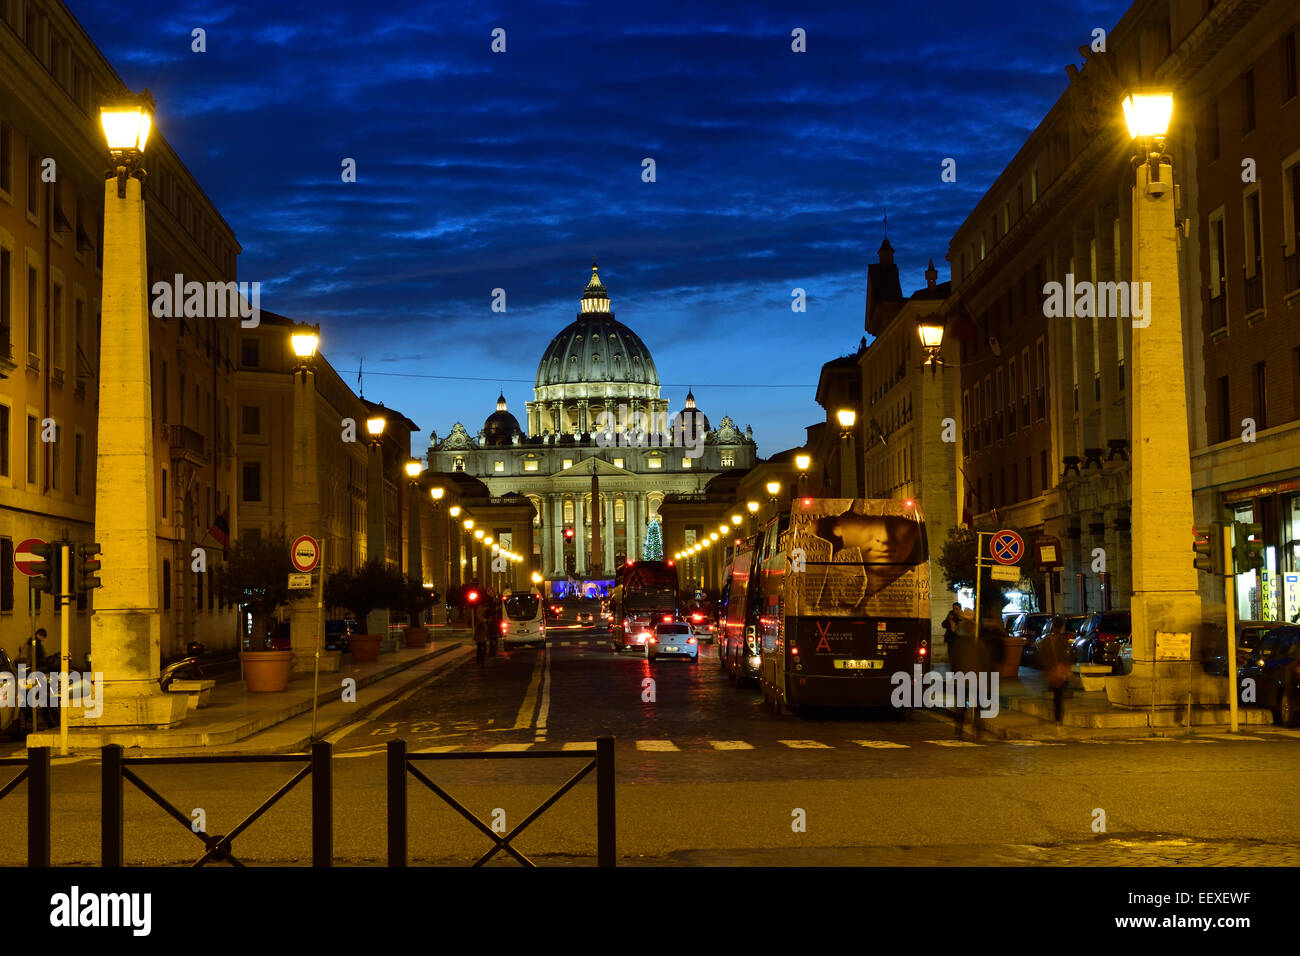 The road up to St Peters square - Stock Image